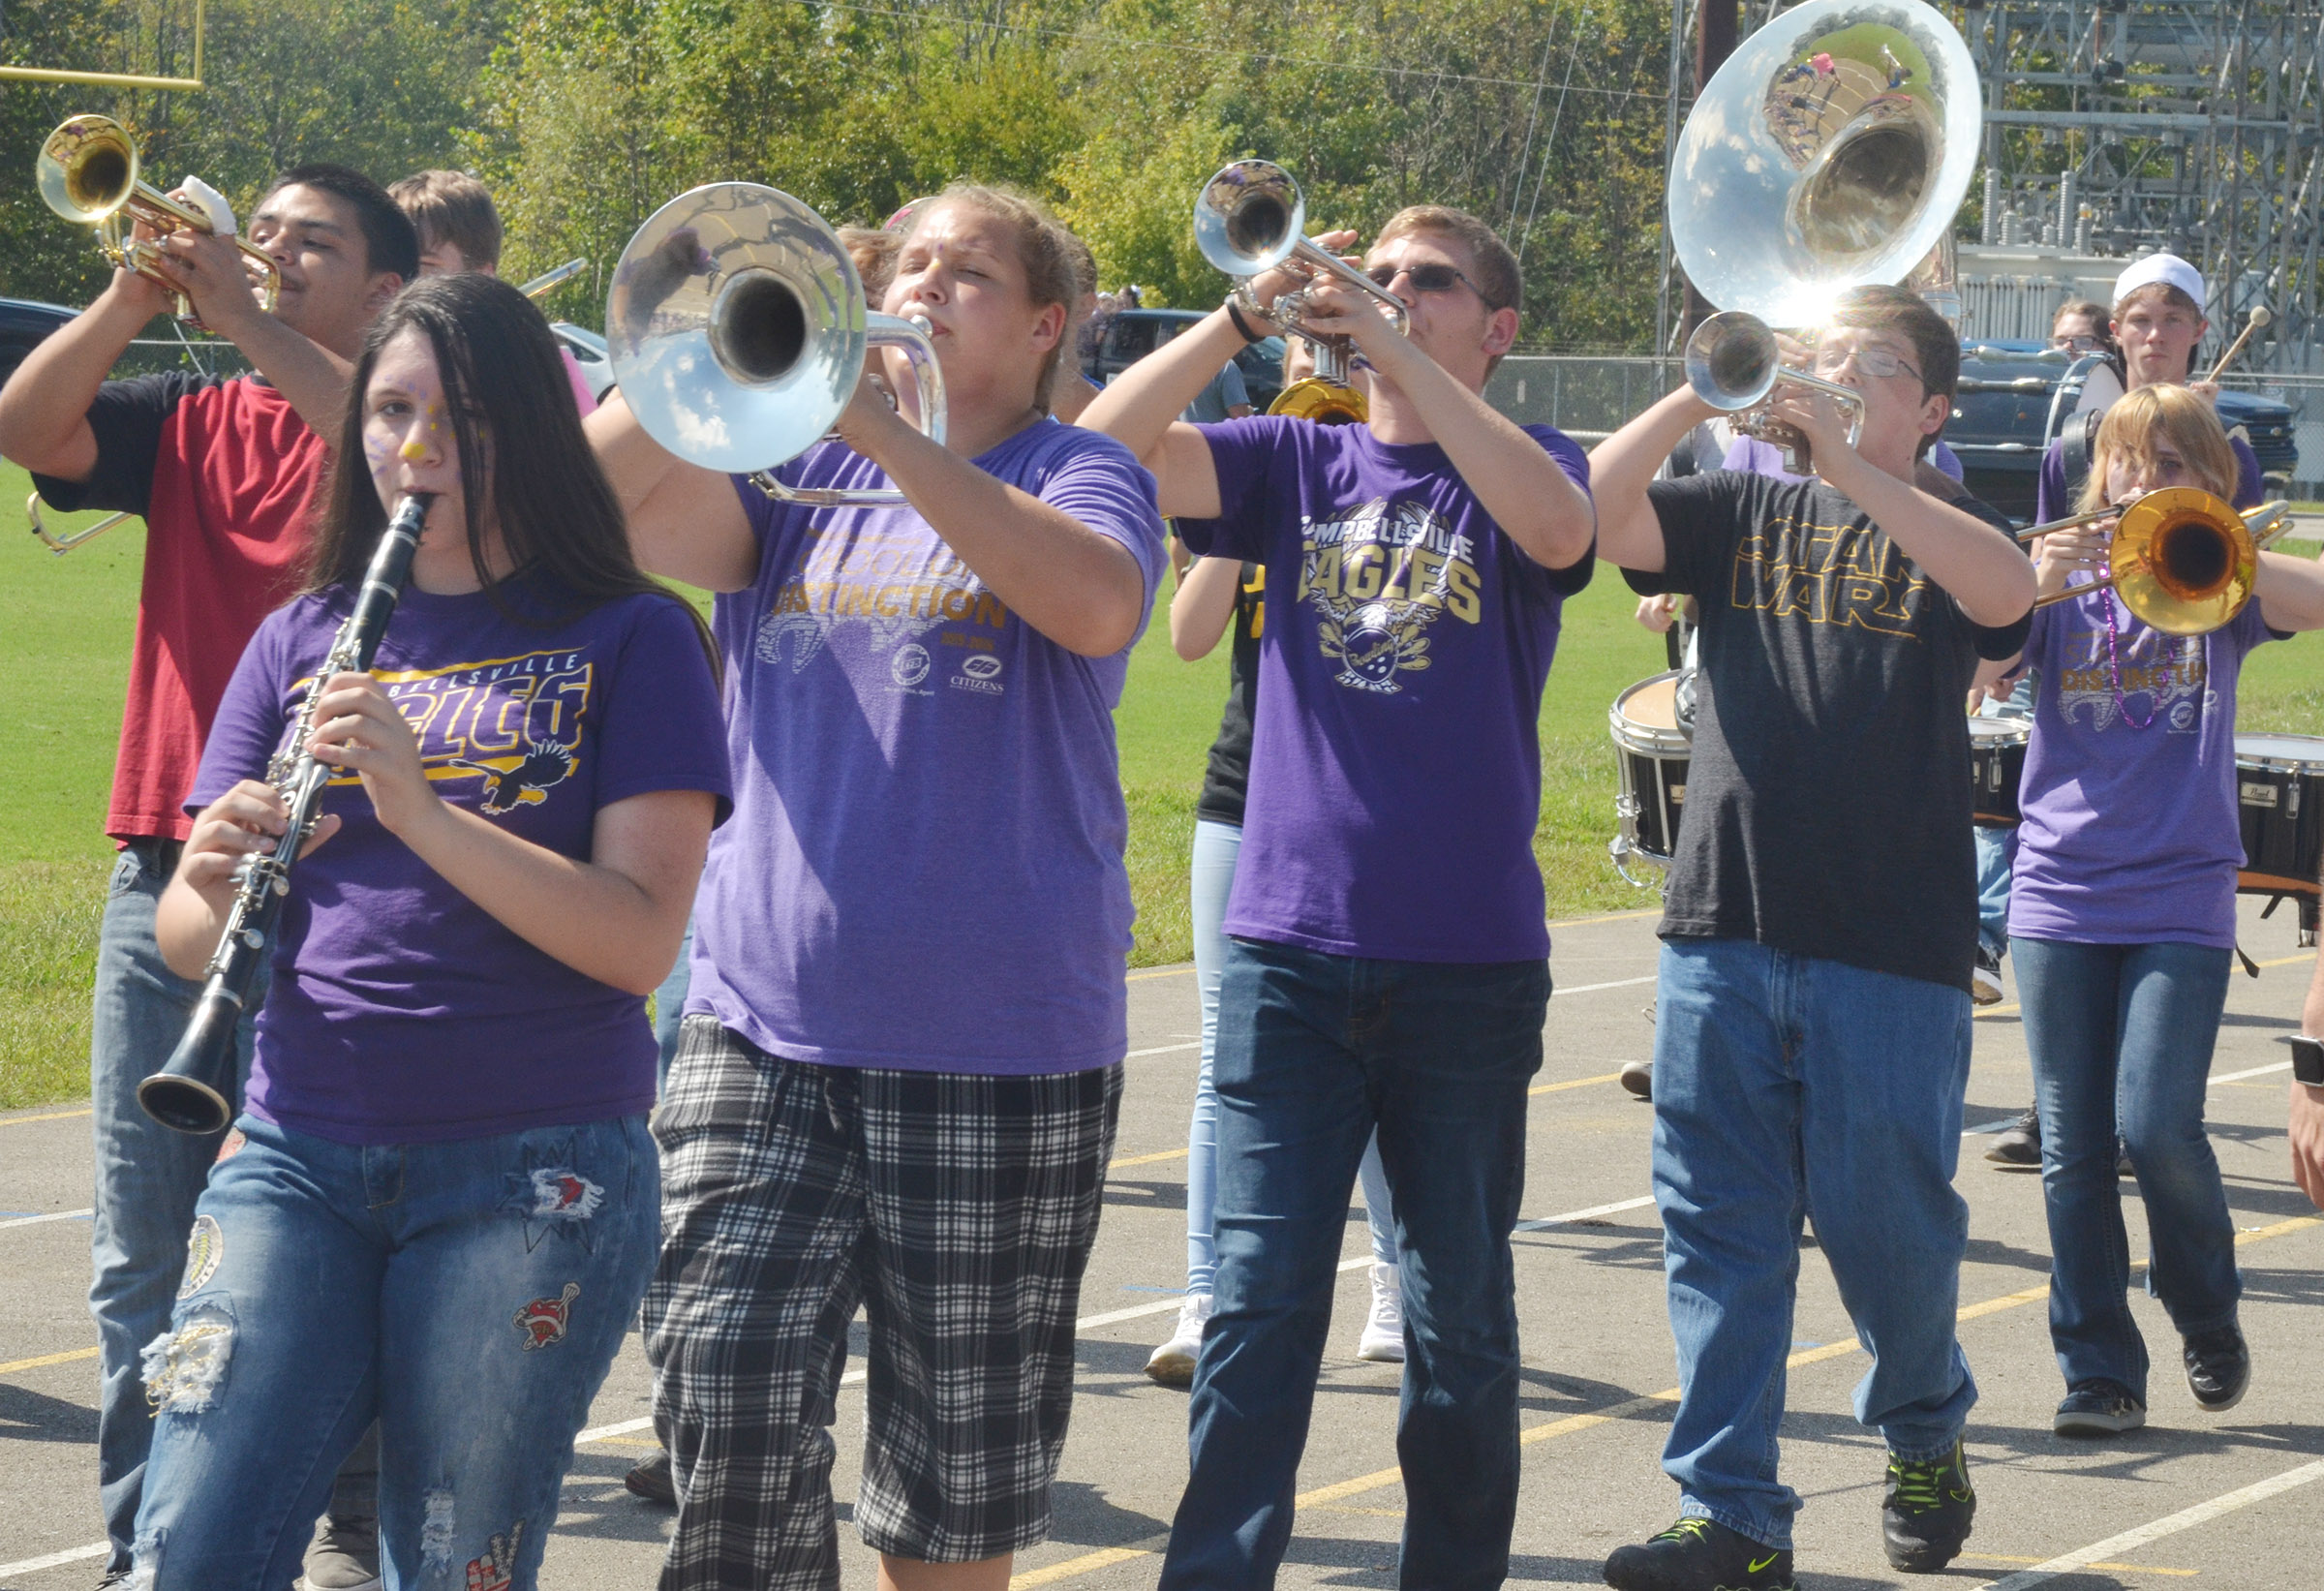 CHS band members march in the parade.